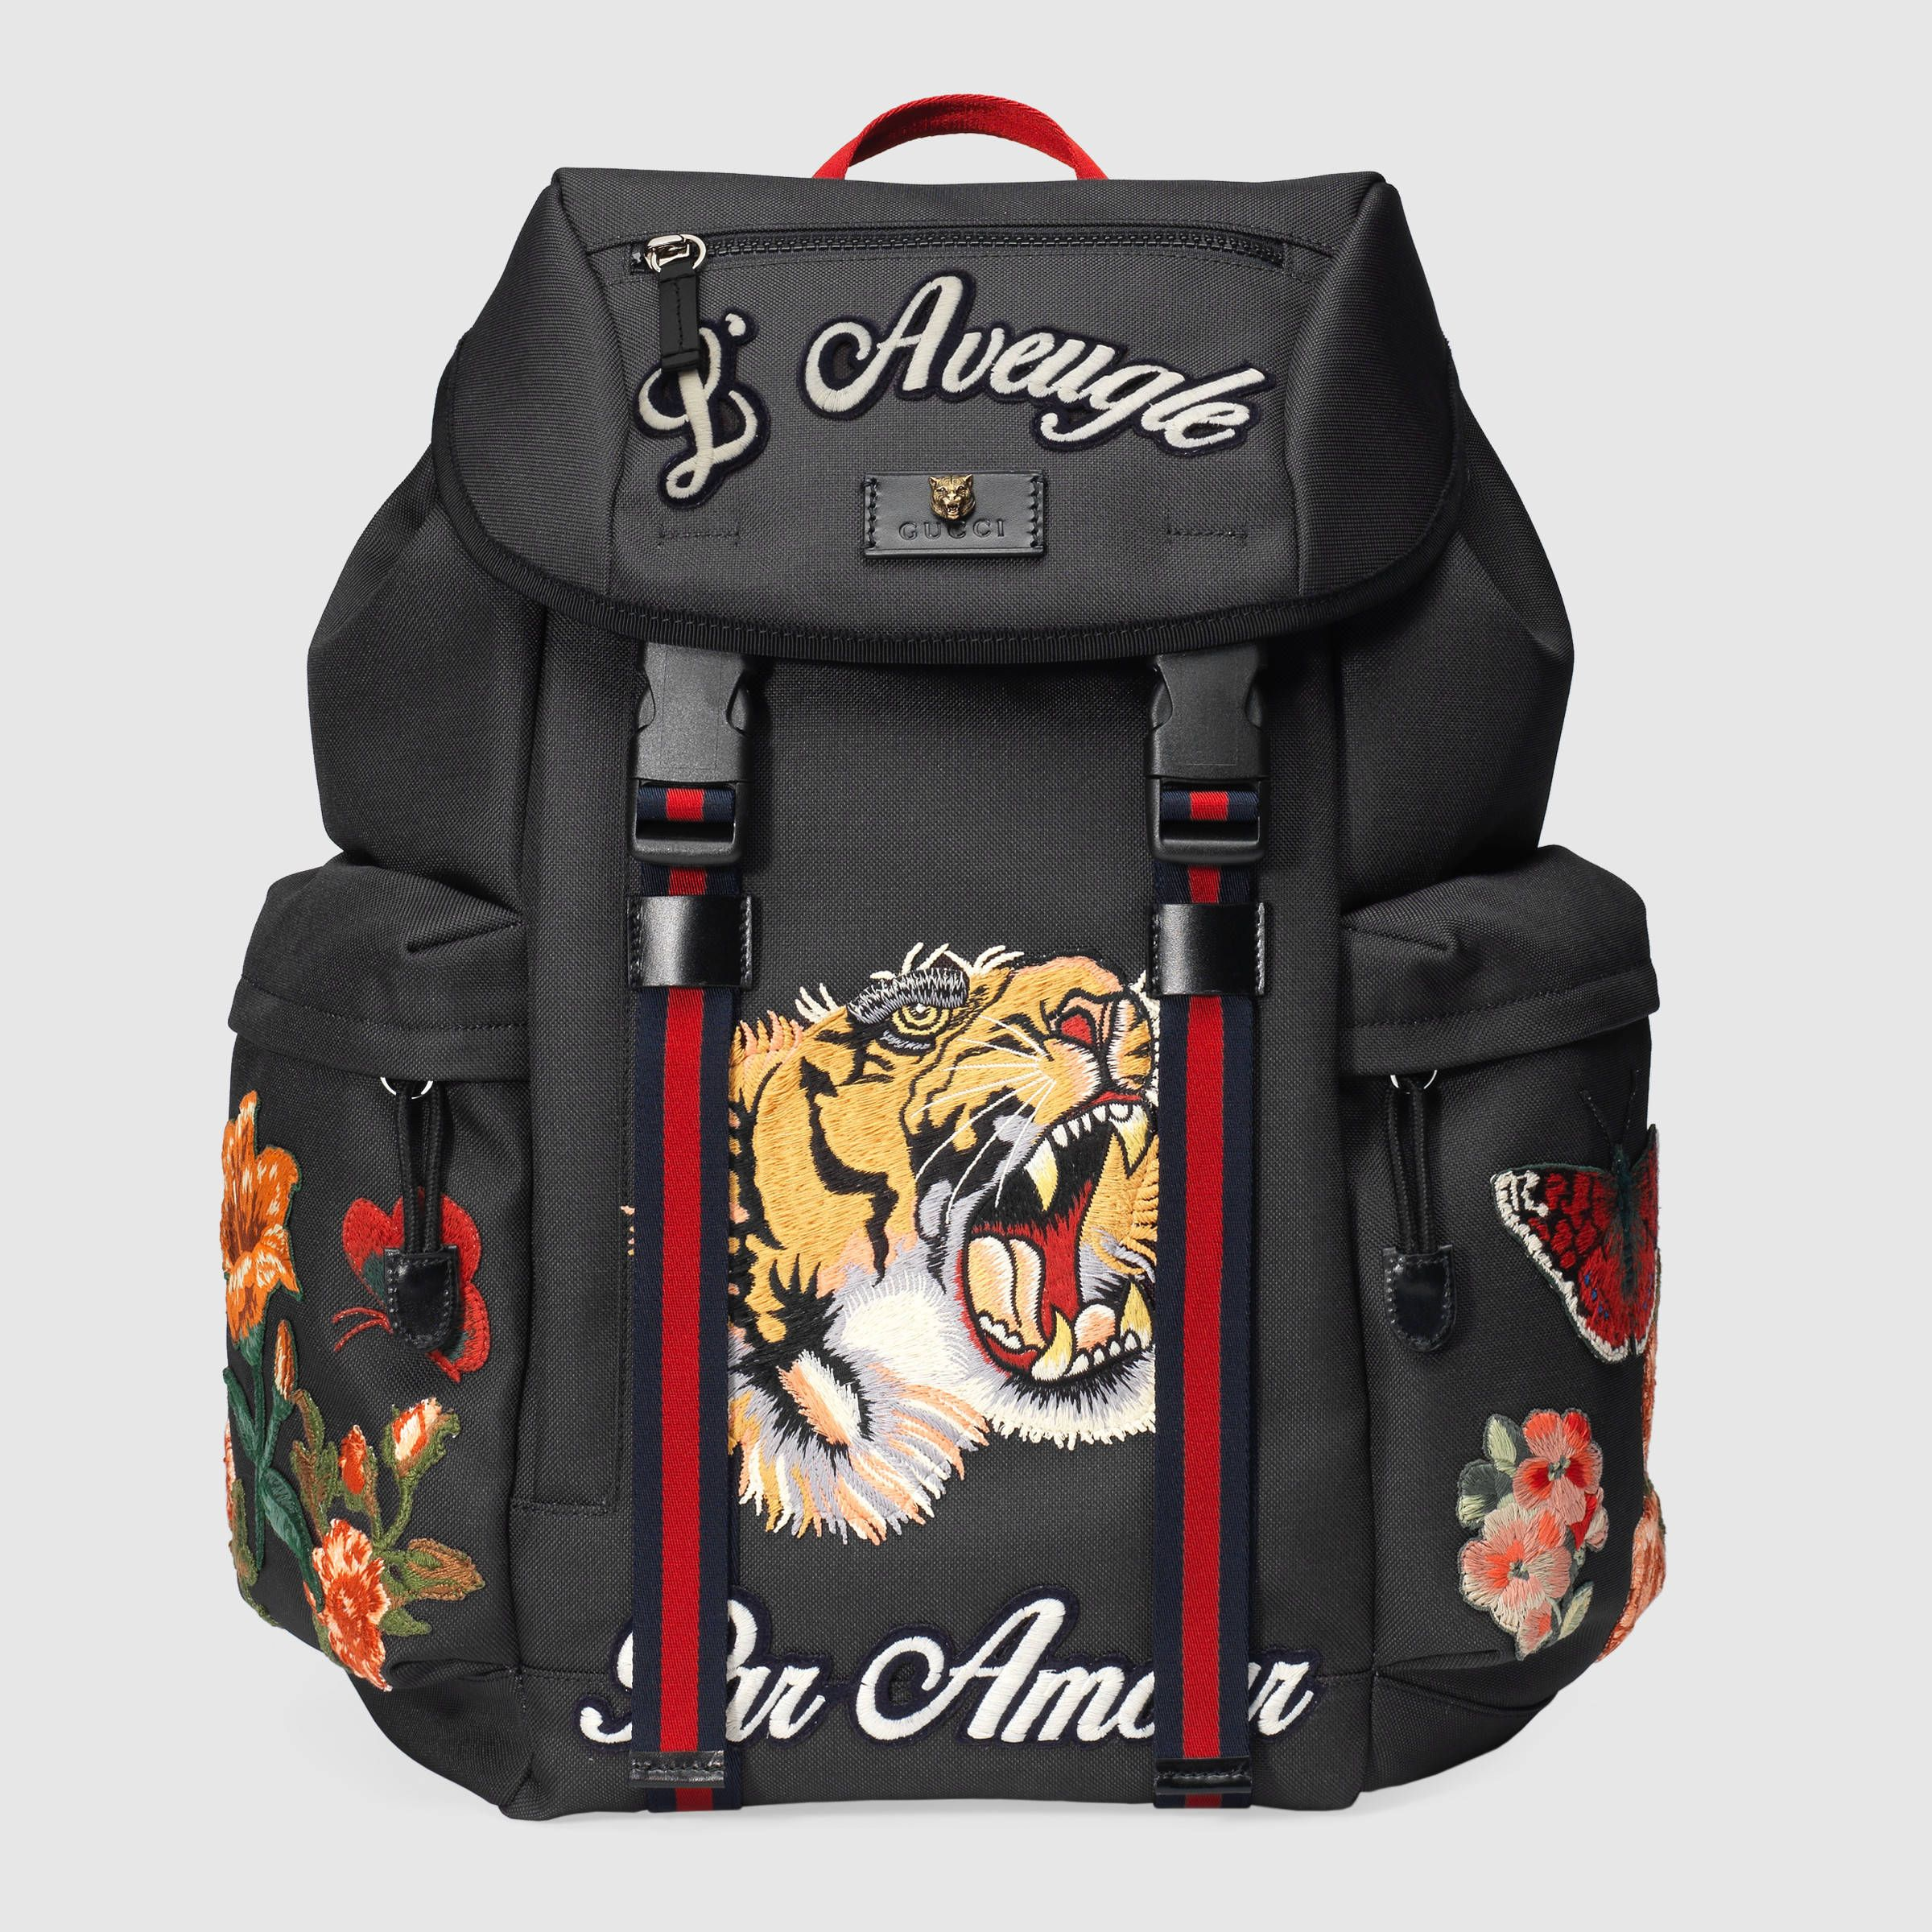 a08b55275 Discover more gifts from the Gucci Garden. The GG Supreme limited edition  backpack, featuring an embroidered kingsnake, heart and flowers.